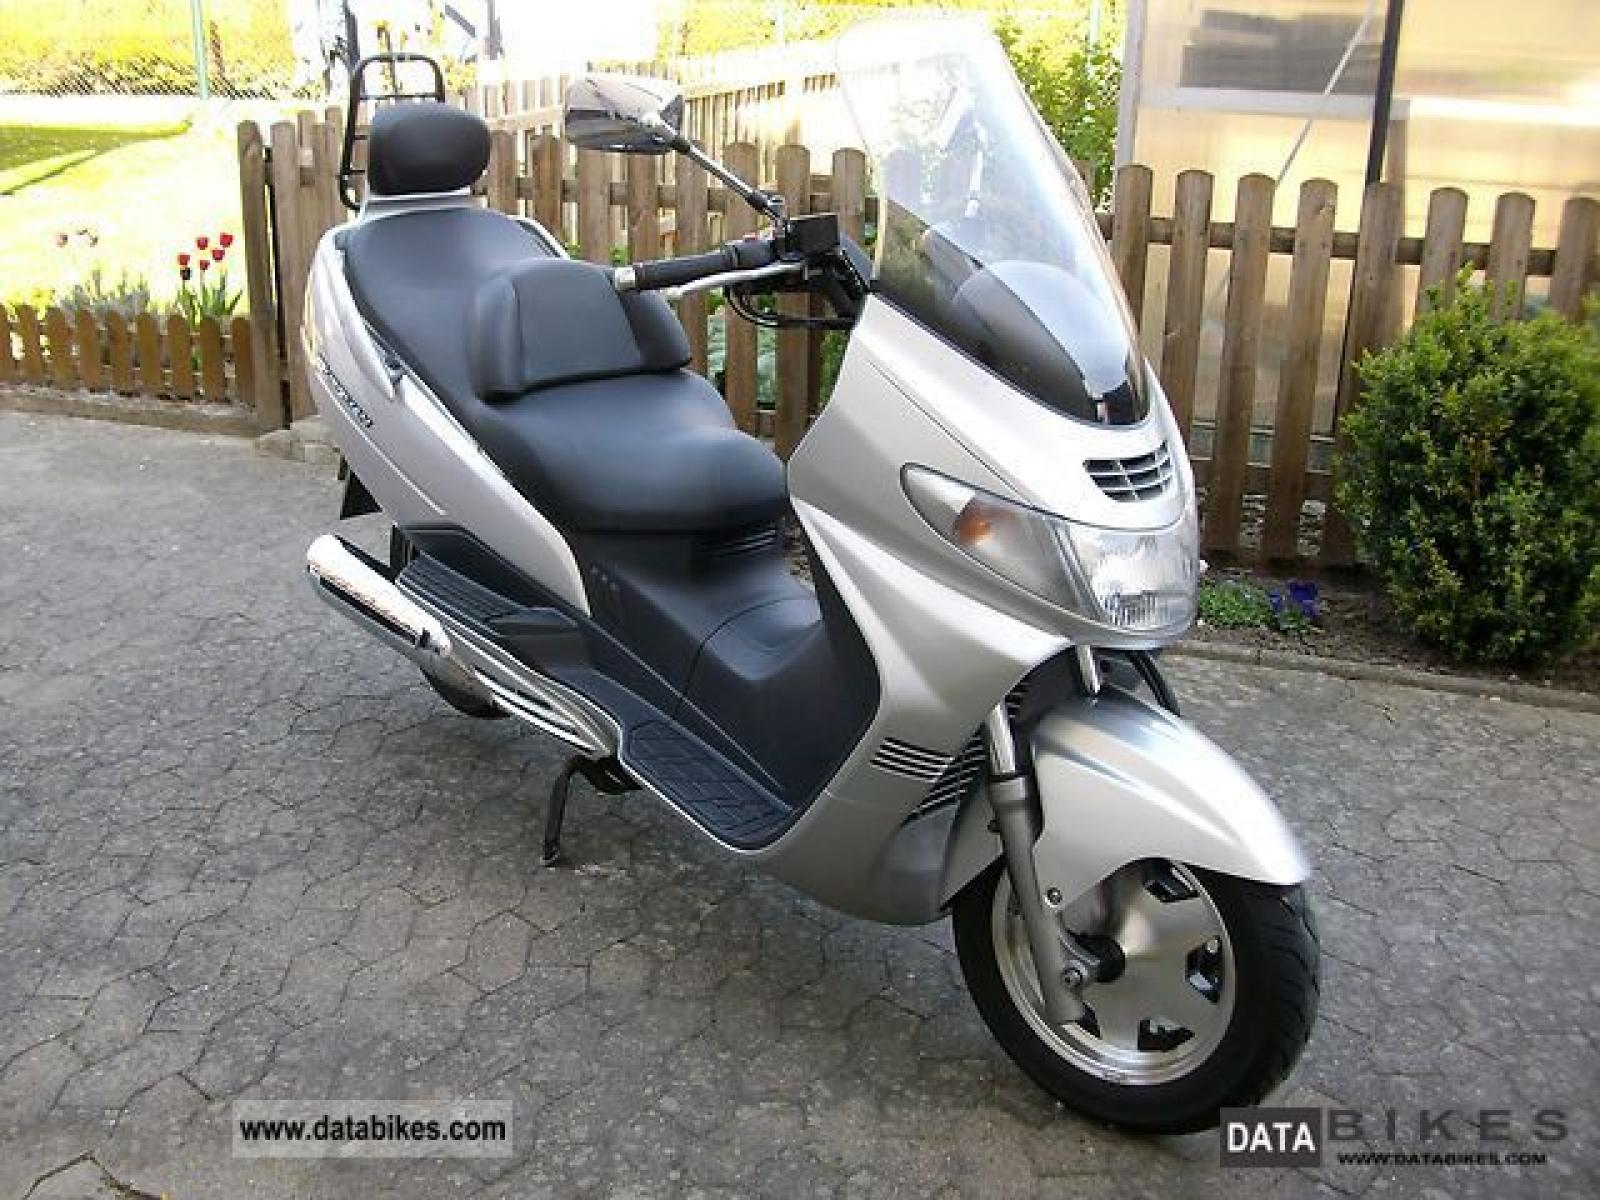 2000 suzuki an 250 burgman moto zombdrive com. Black Bedroom Furniture Sets. Home Design Ideas